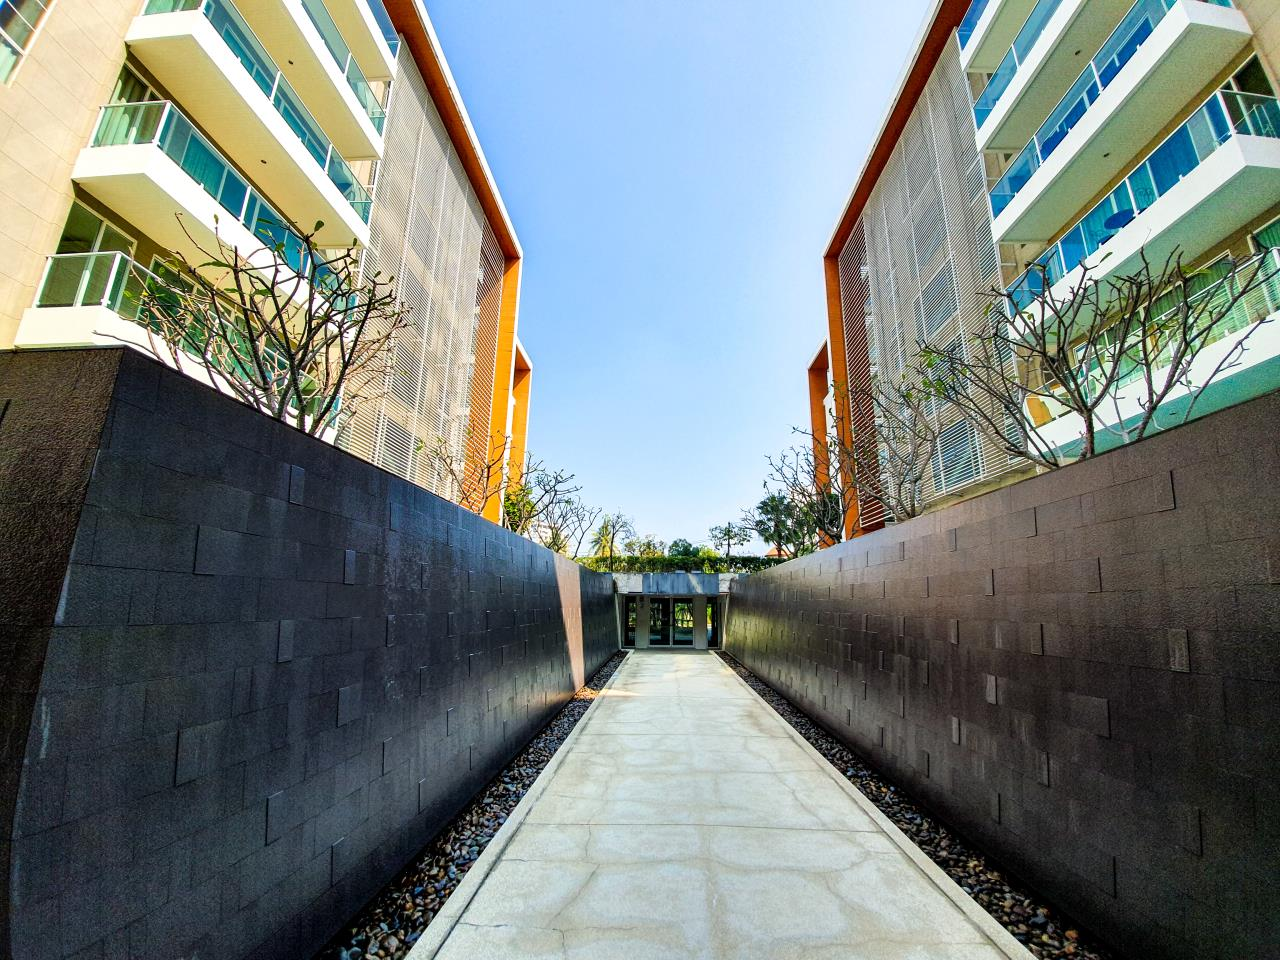 HOME - Real Estate Service Agency's The Breeze Hua Hin / 2 Beds (FOR RENT), เดอะ บรีซ หัวหิน / 2 ห้องนอน (ให้เช่า) T008 23